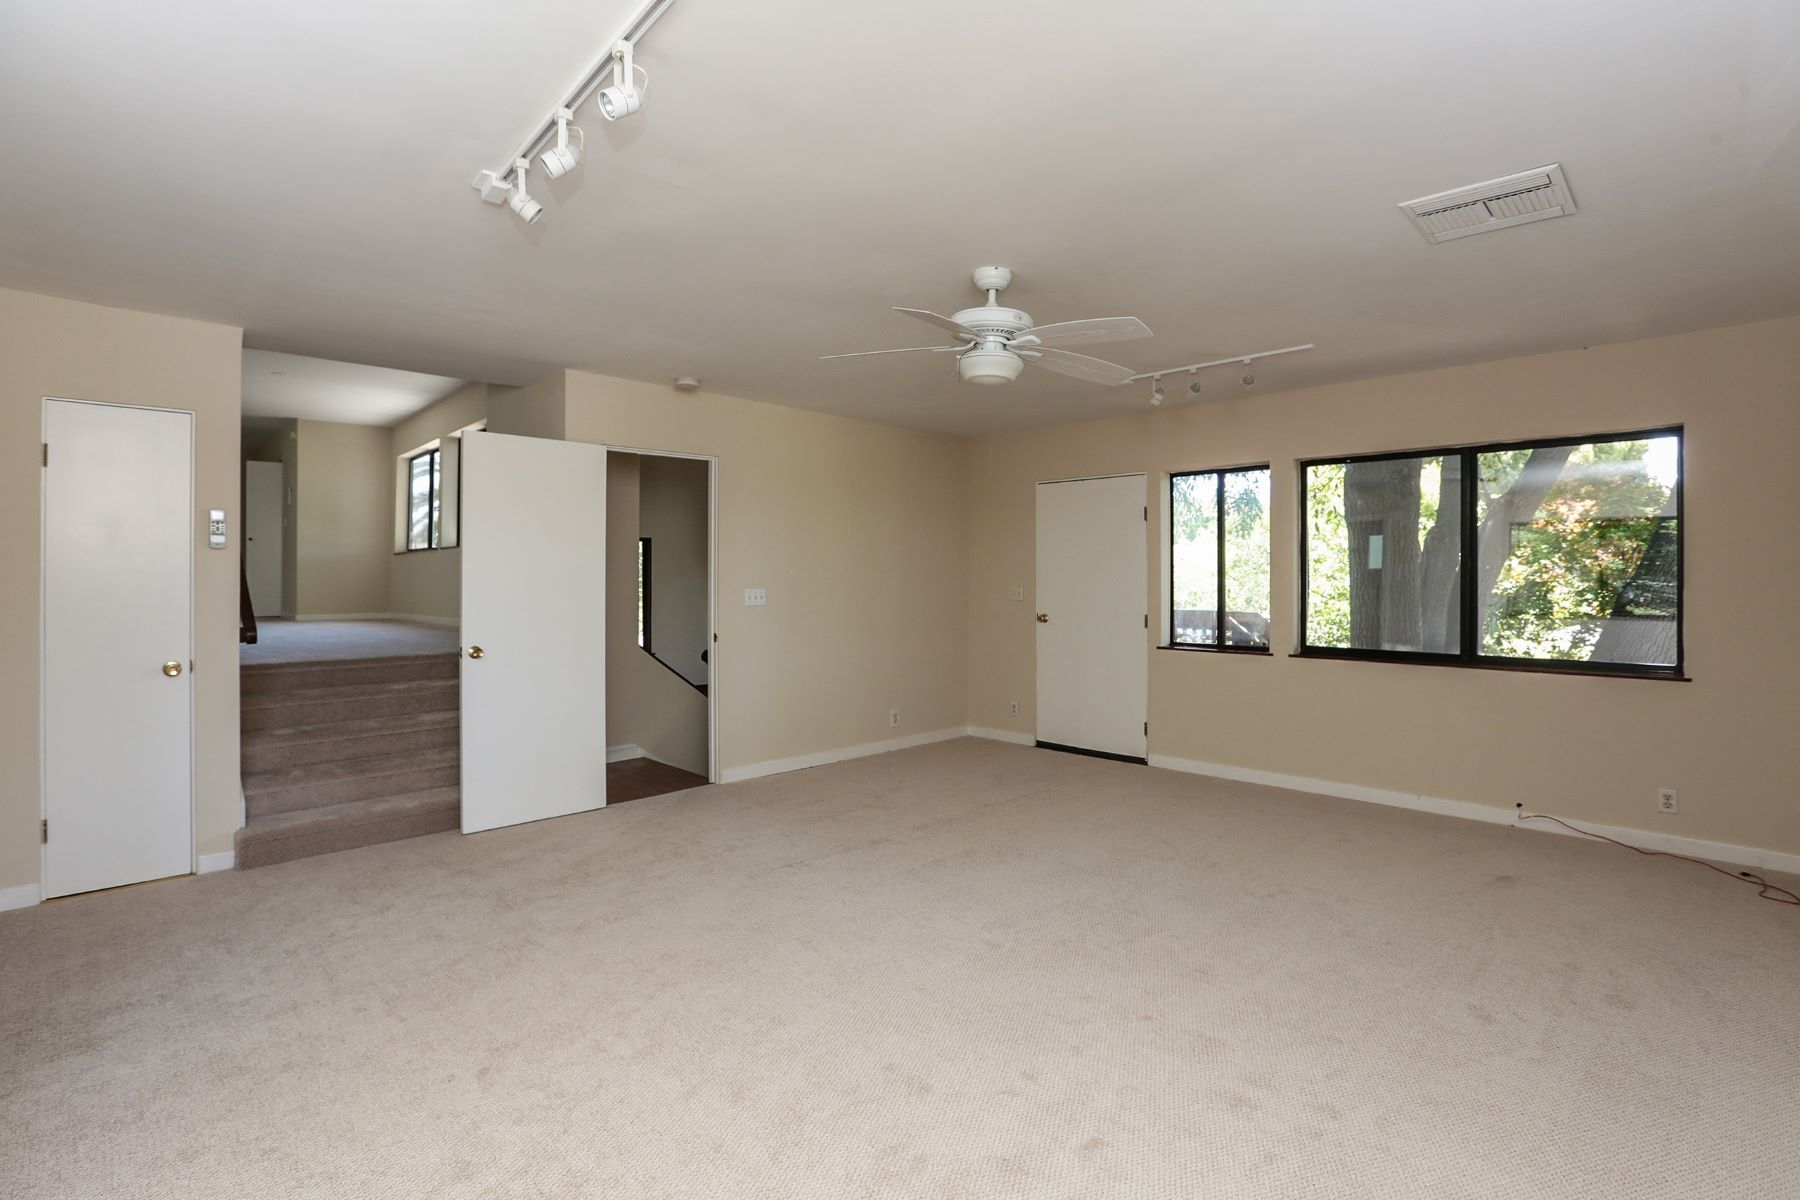 Additional photo for property listing at 3433 Kenneth Dr  Palo Alto, California 94303 United States